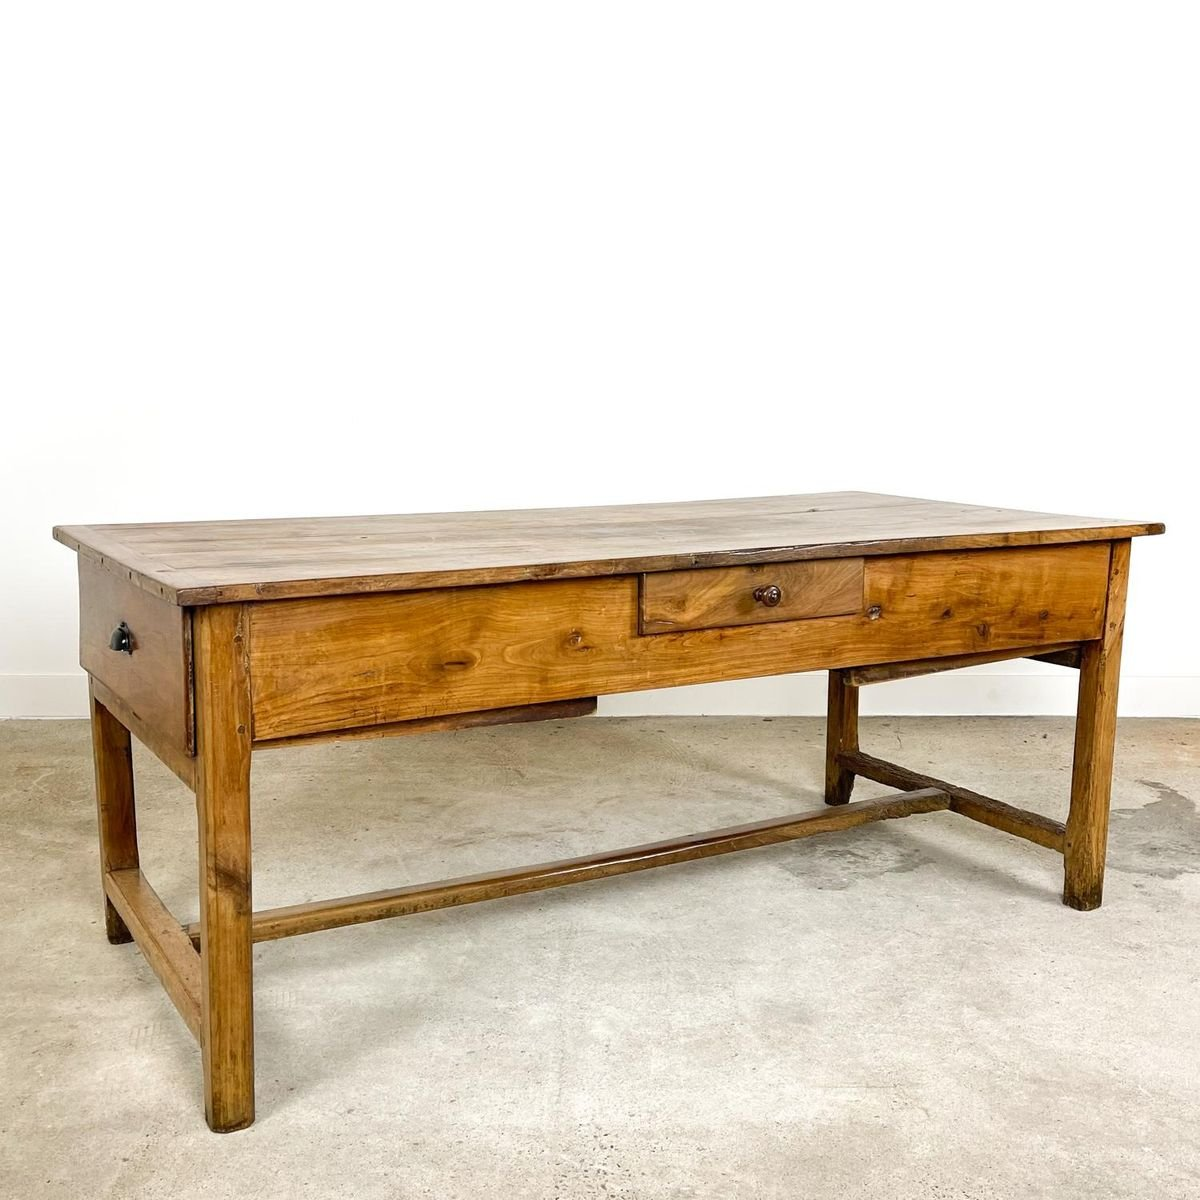 French Antique Cherry Wooden Kitchen Farmhouse Table For Sale At Pamono